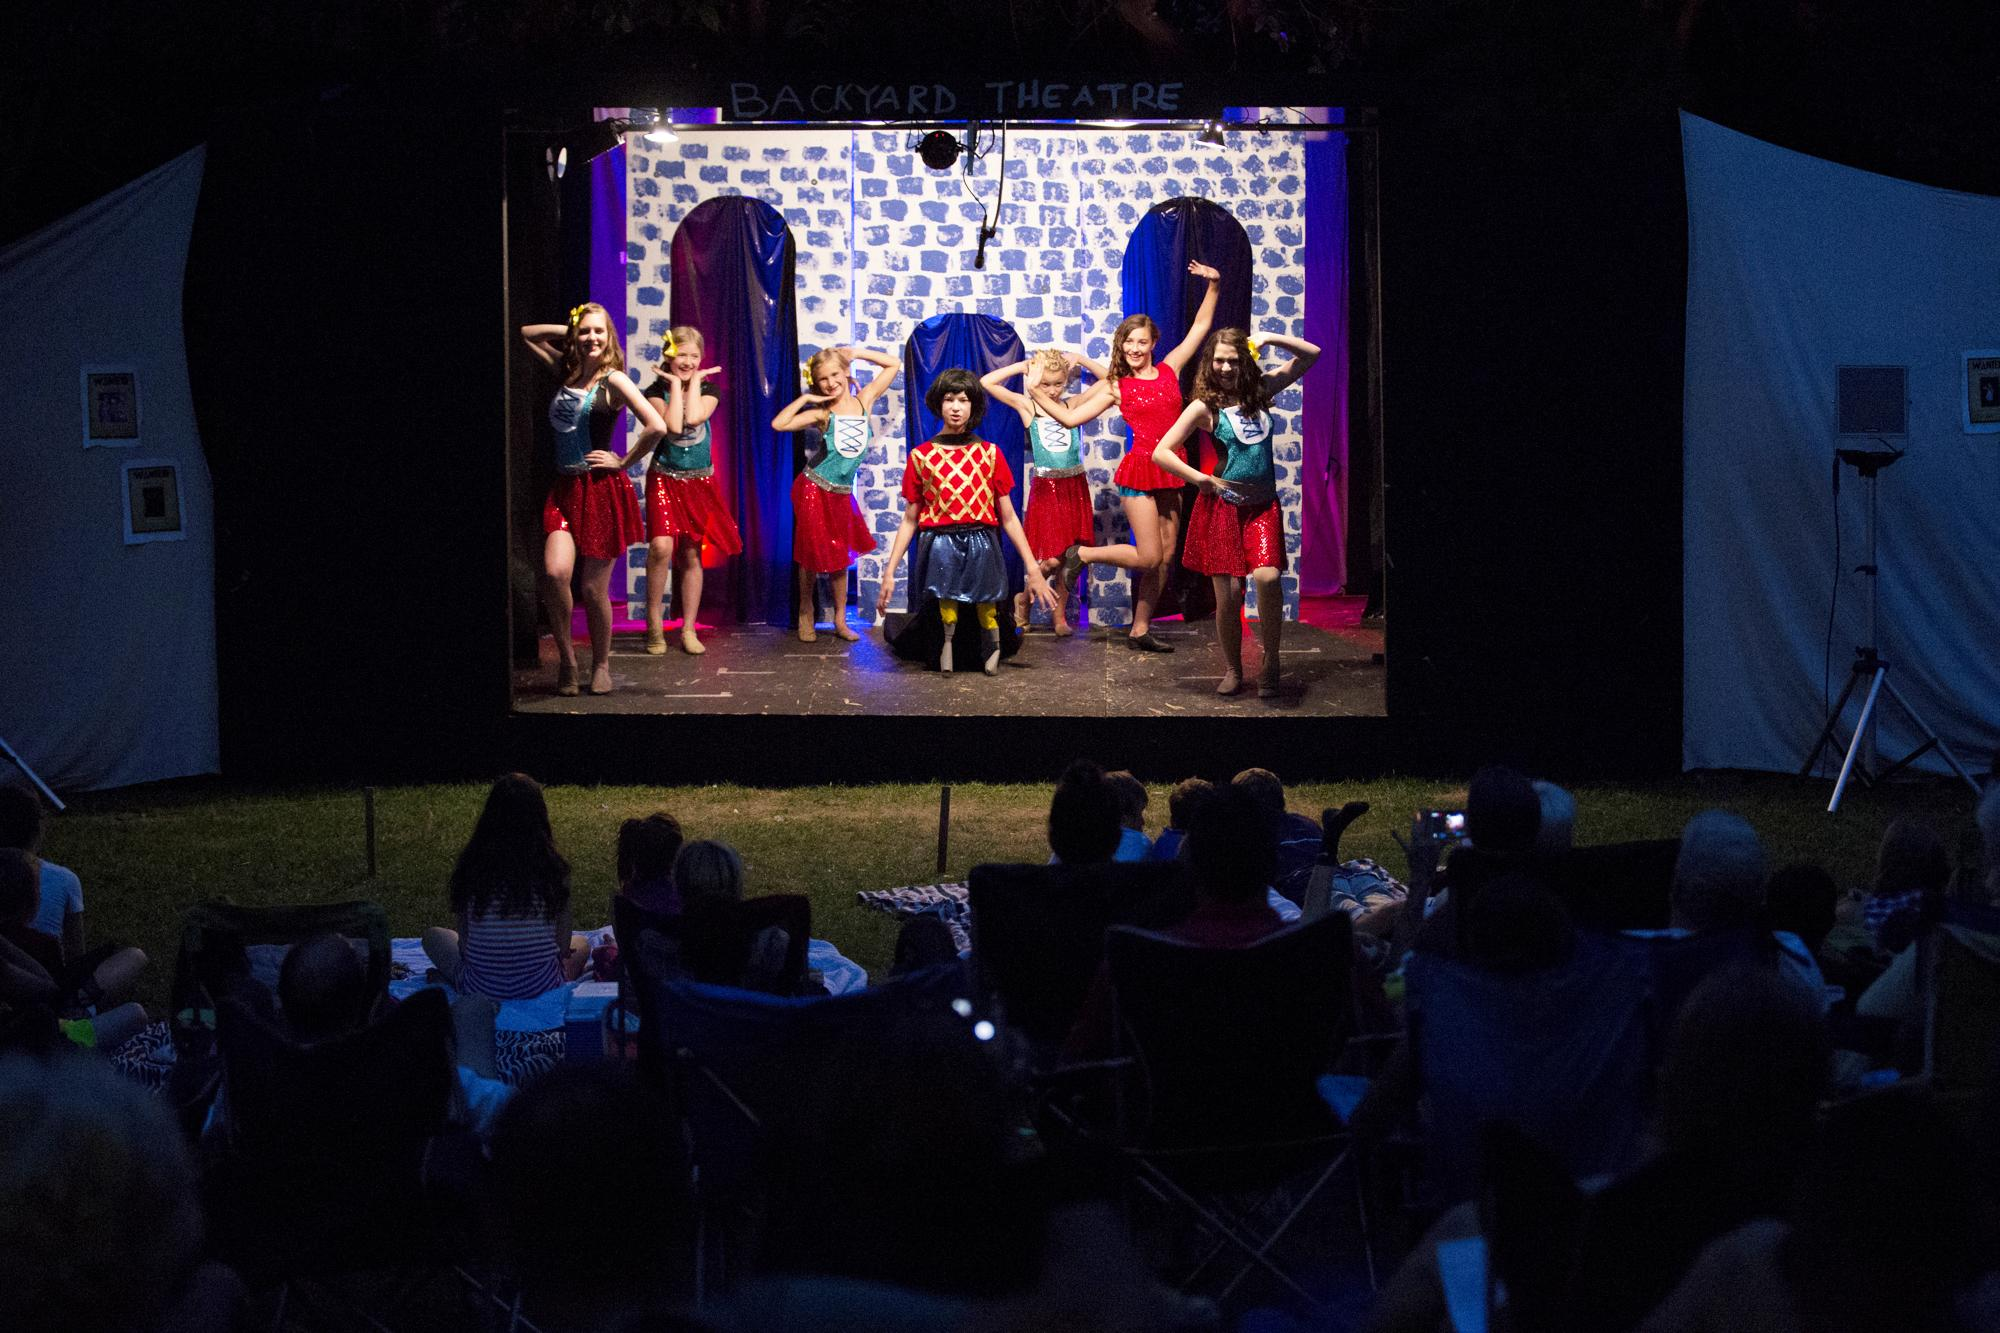 13 year old theater impresario pulls off backyard production